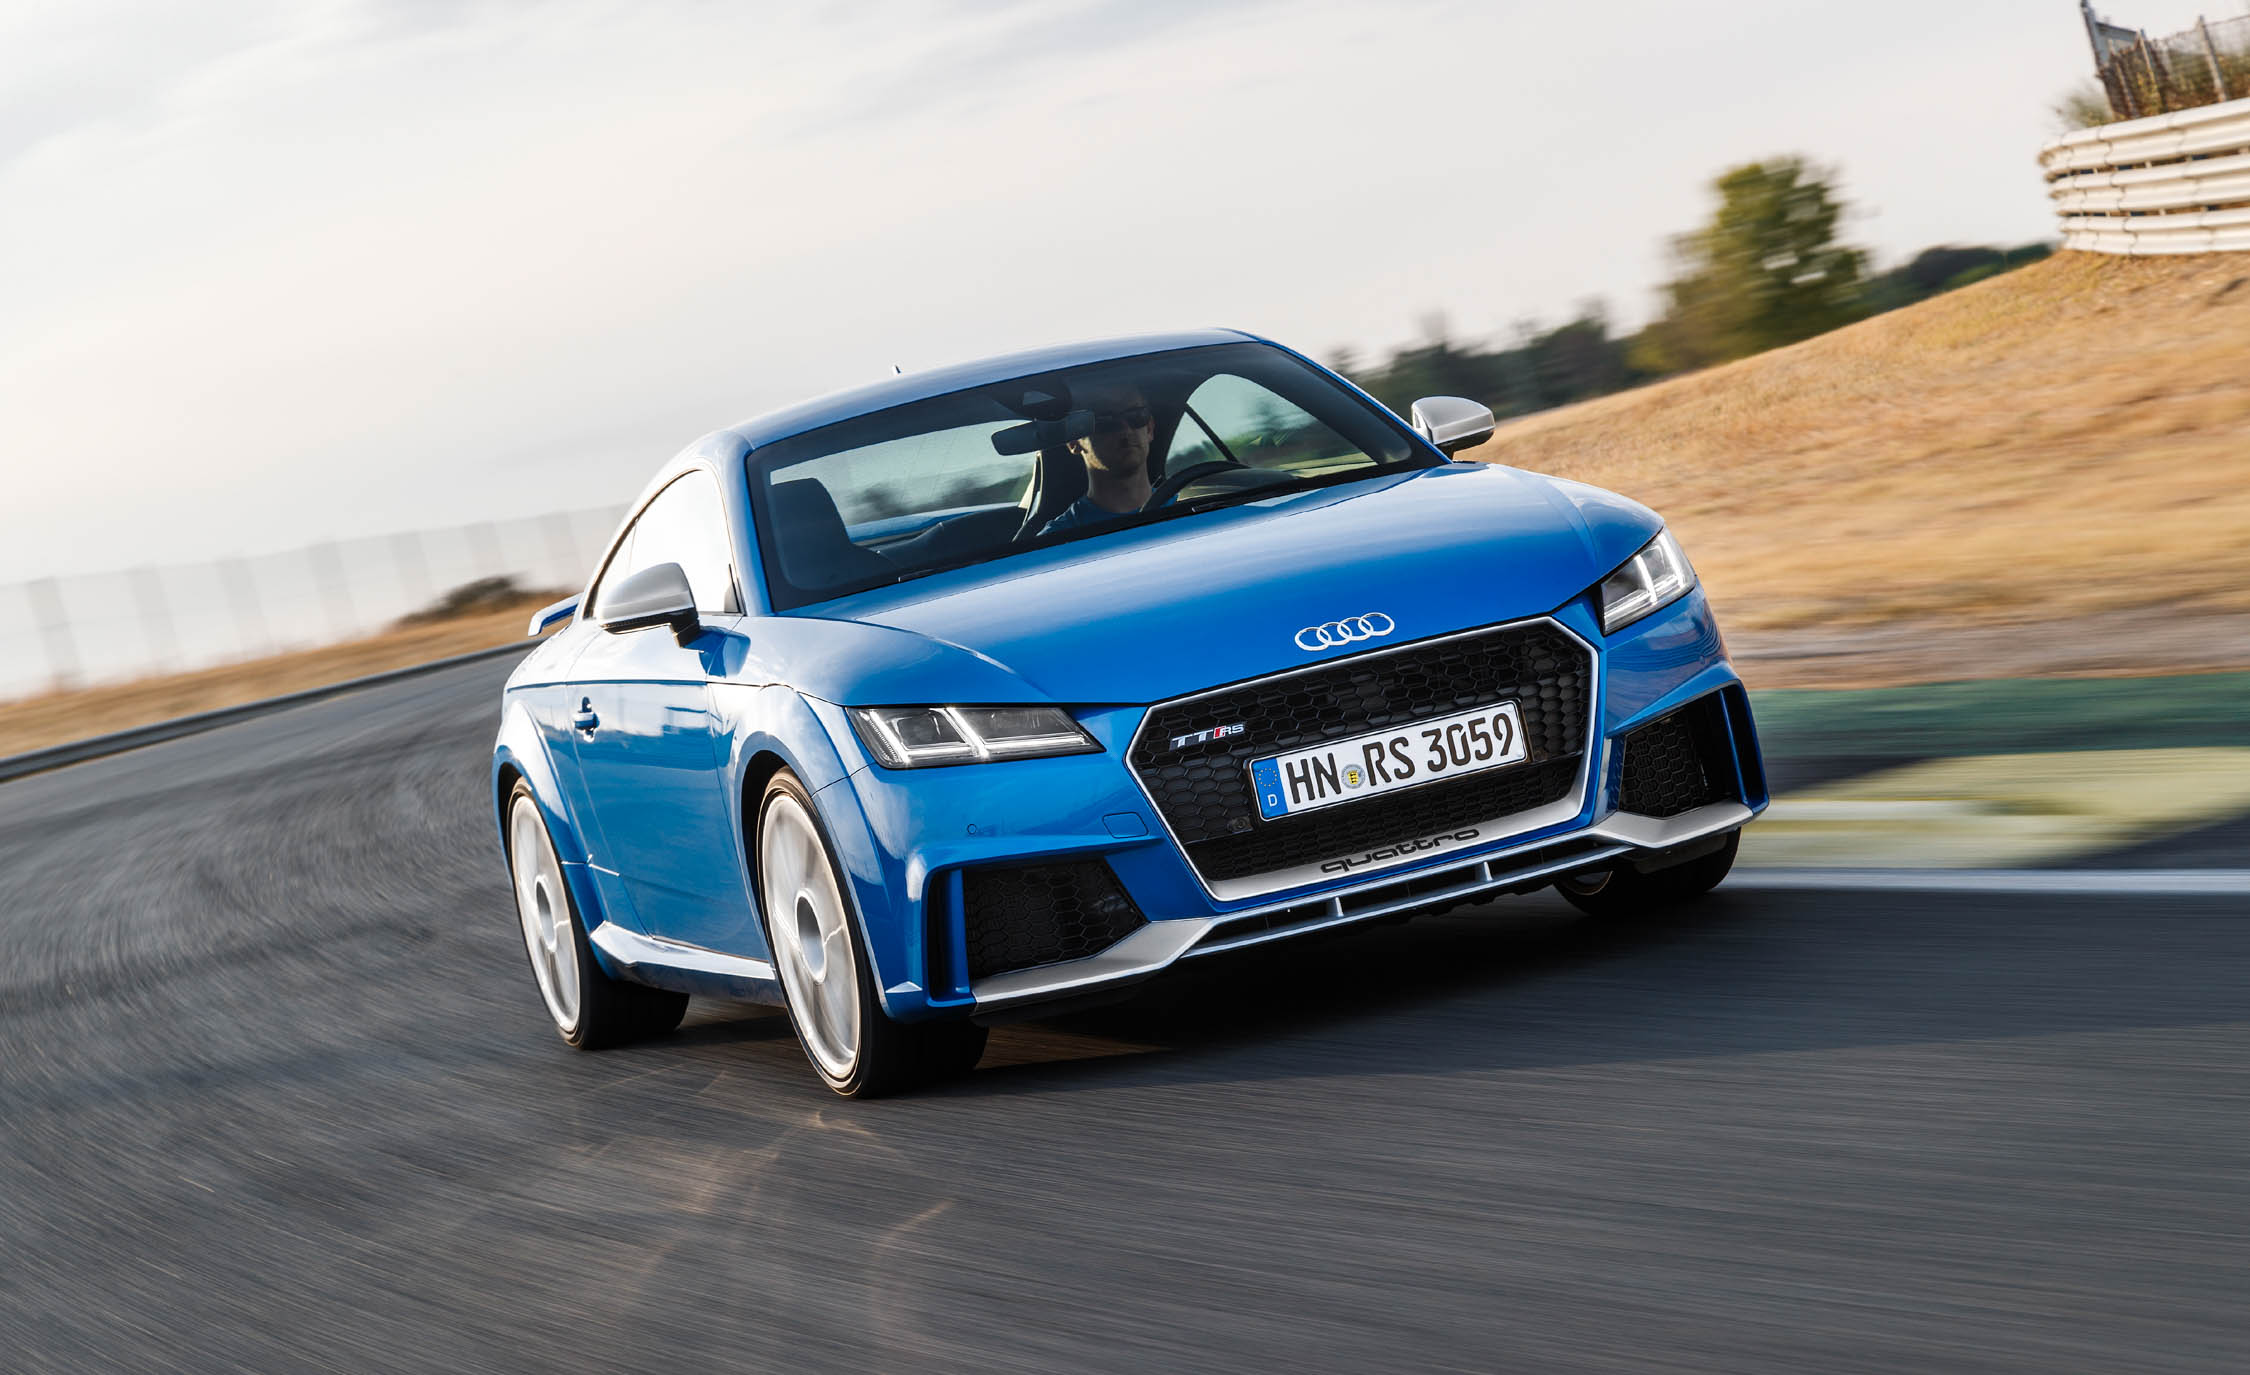 2017 Audi TT RS Coupe (View 2 of 34)